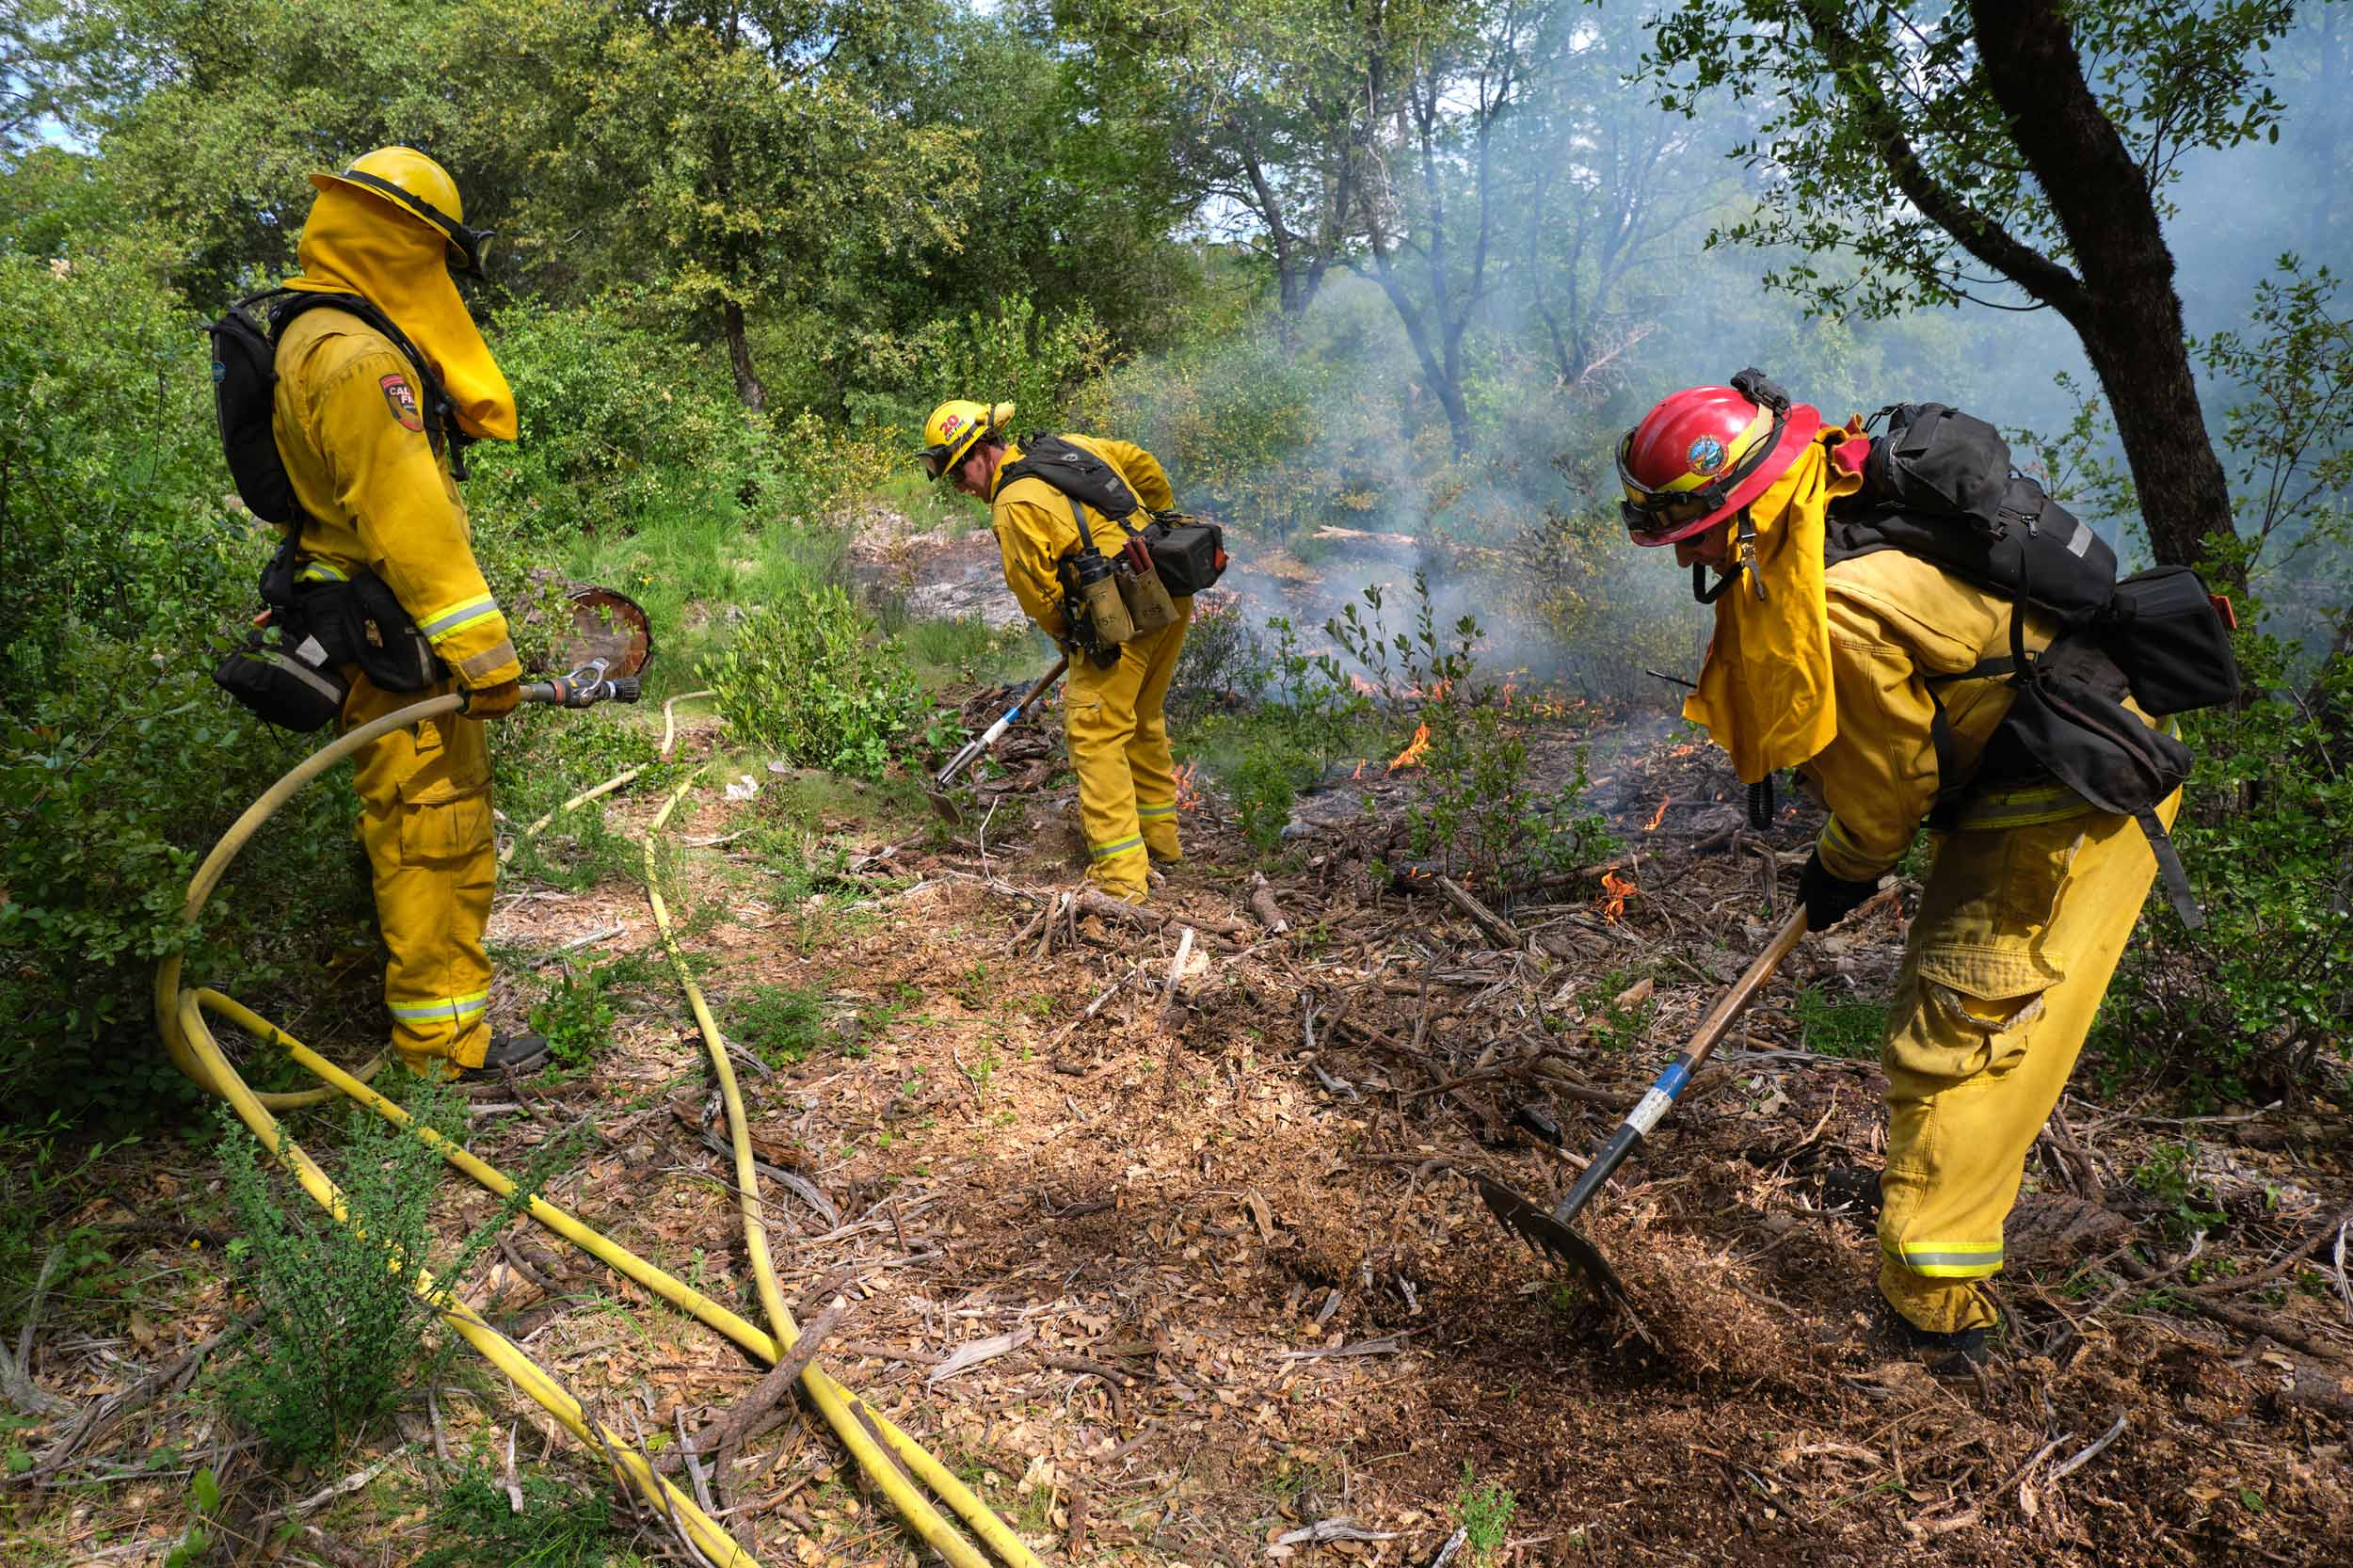 Firefighters Manage a Controlled Burn